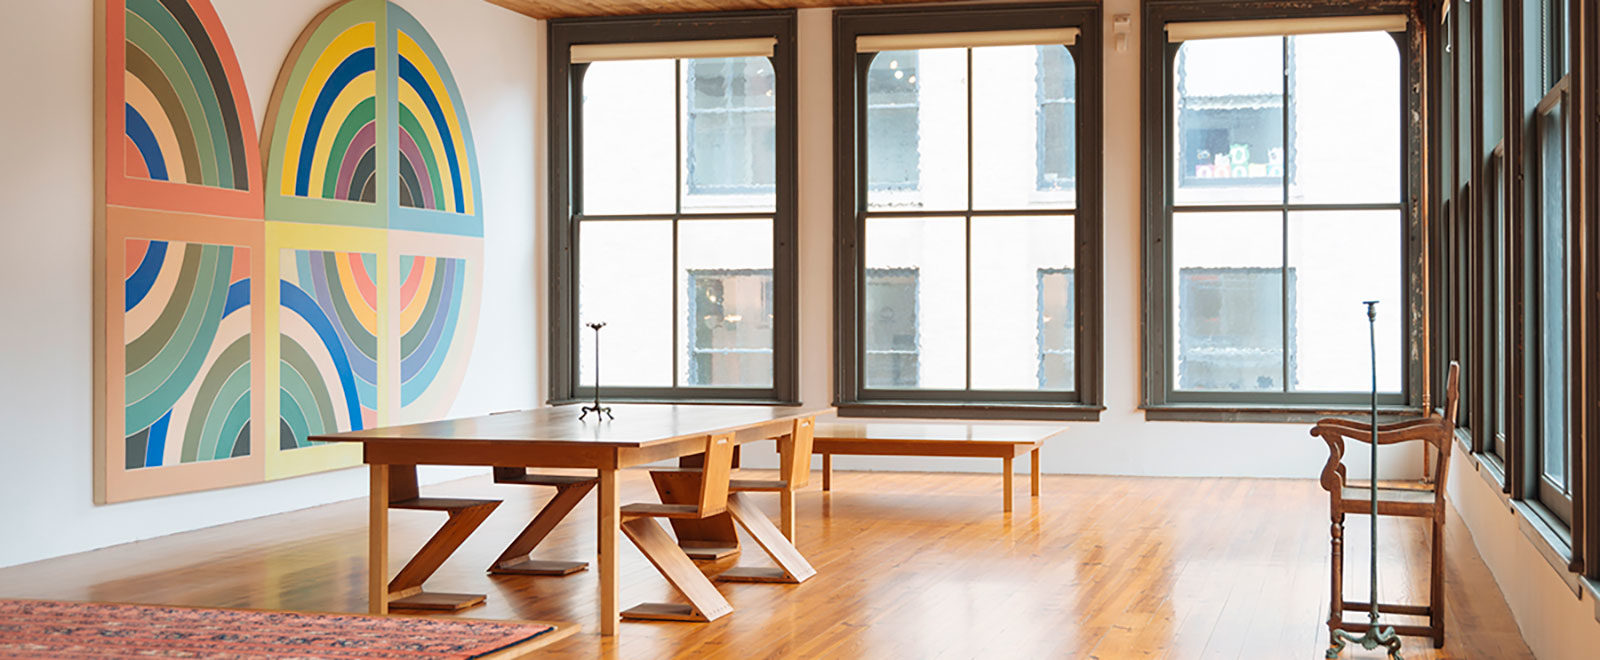 Step Inside Donald Judd's Finest Work